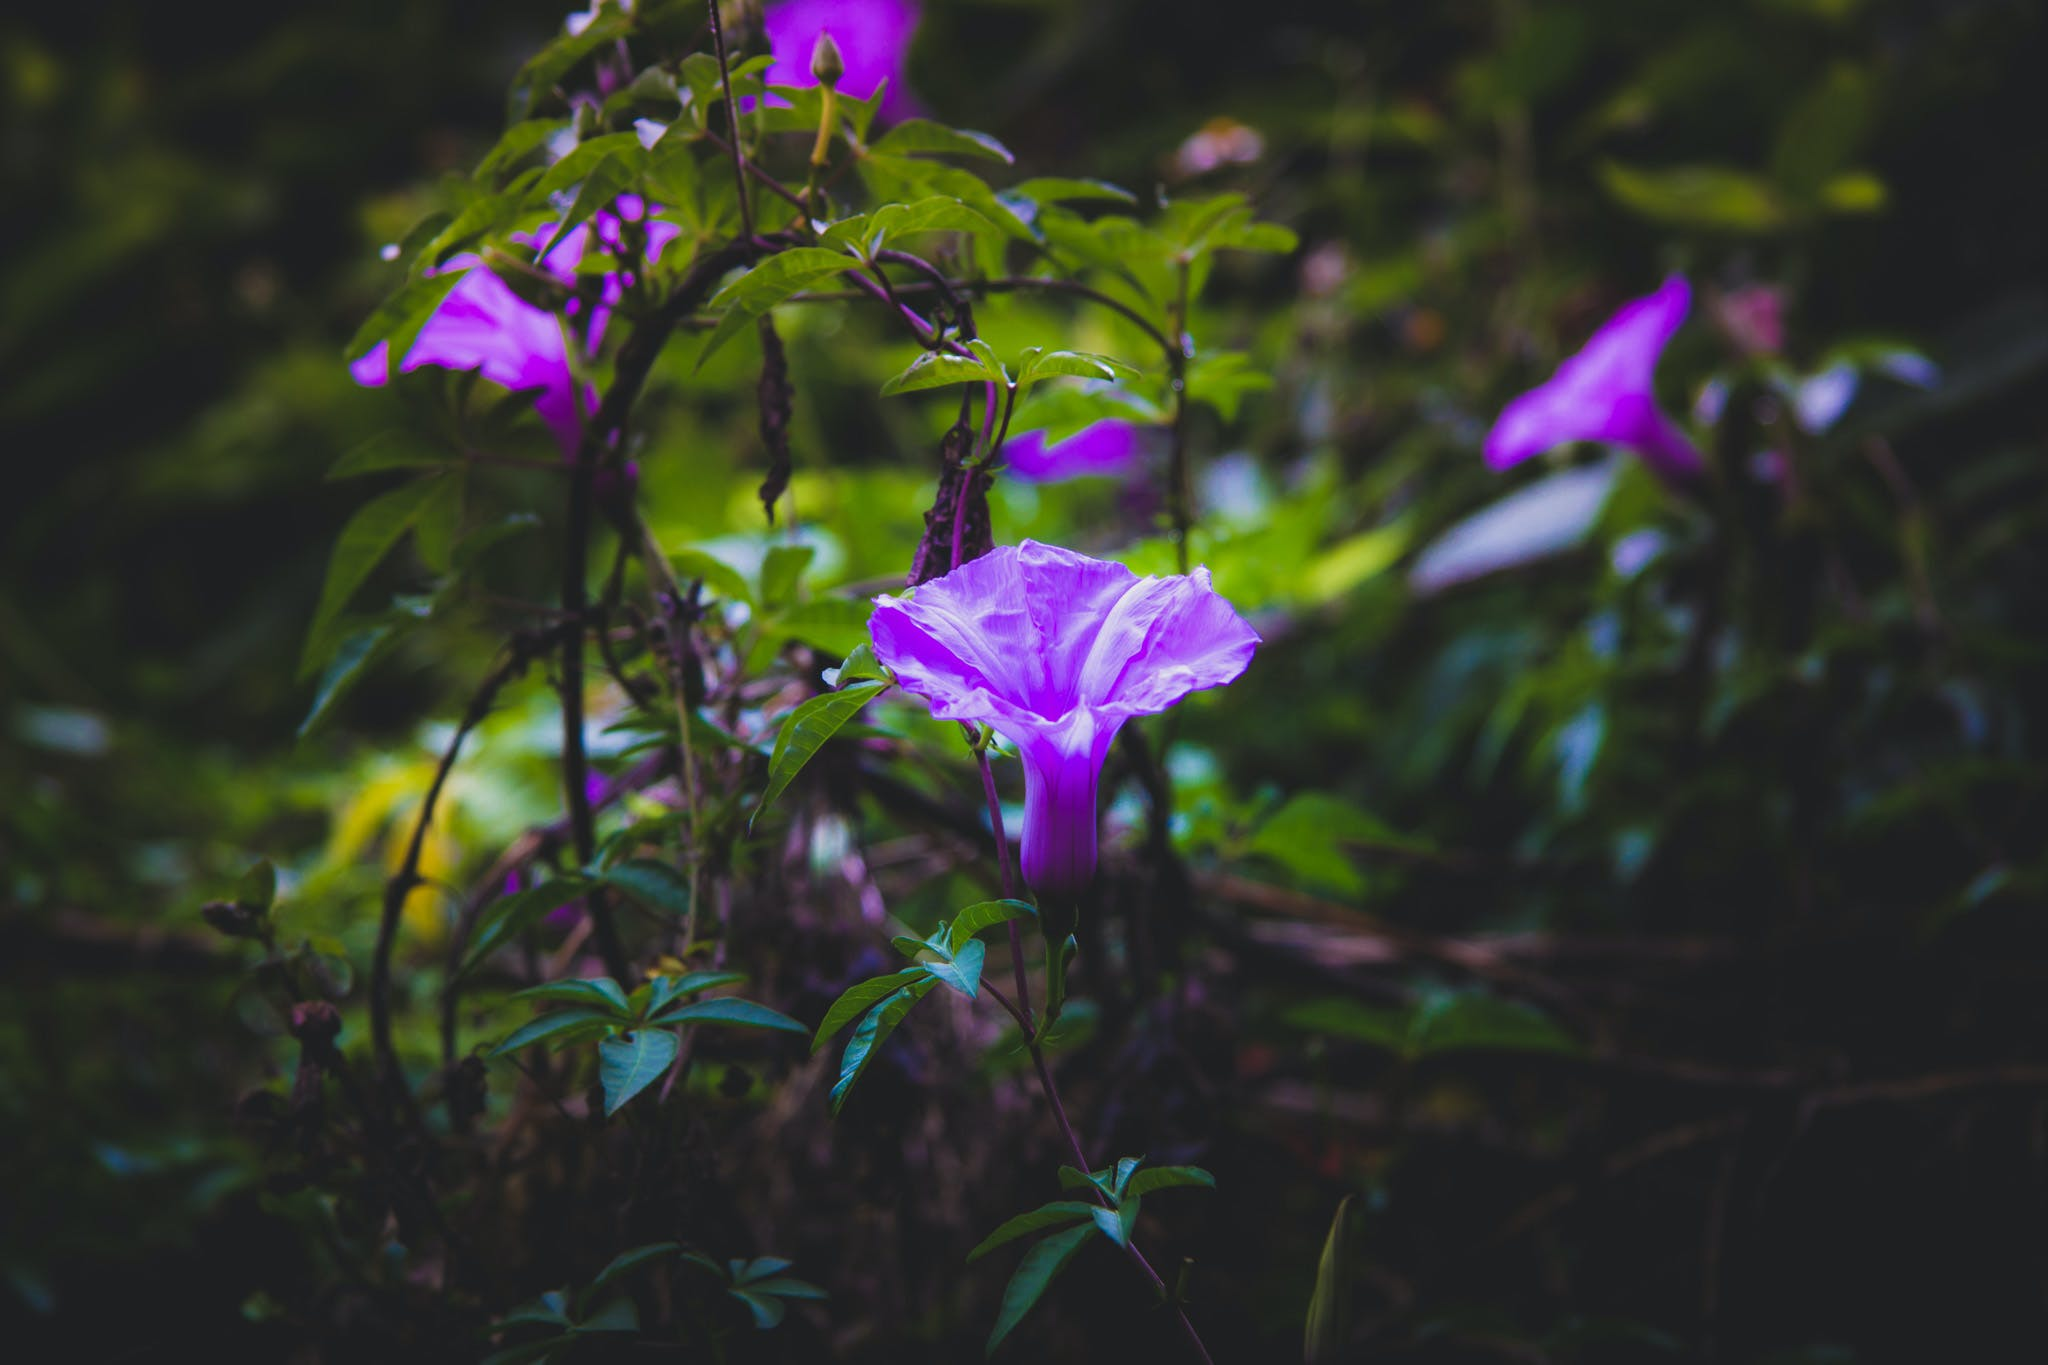 Free stock photo of dewdrops flora  flower  flowers  garden  greenery